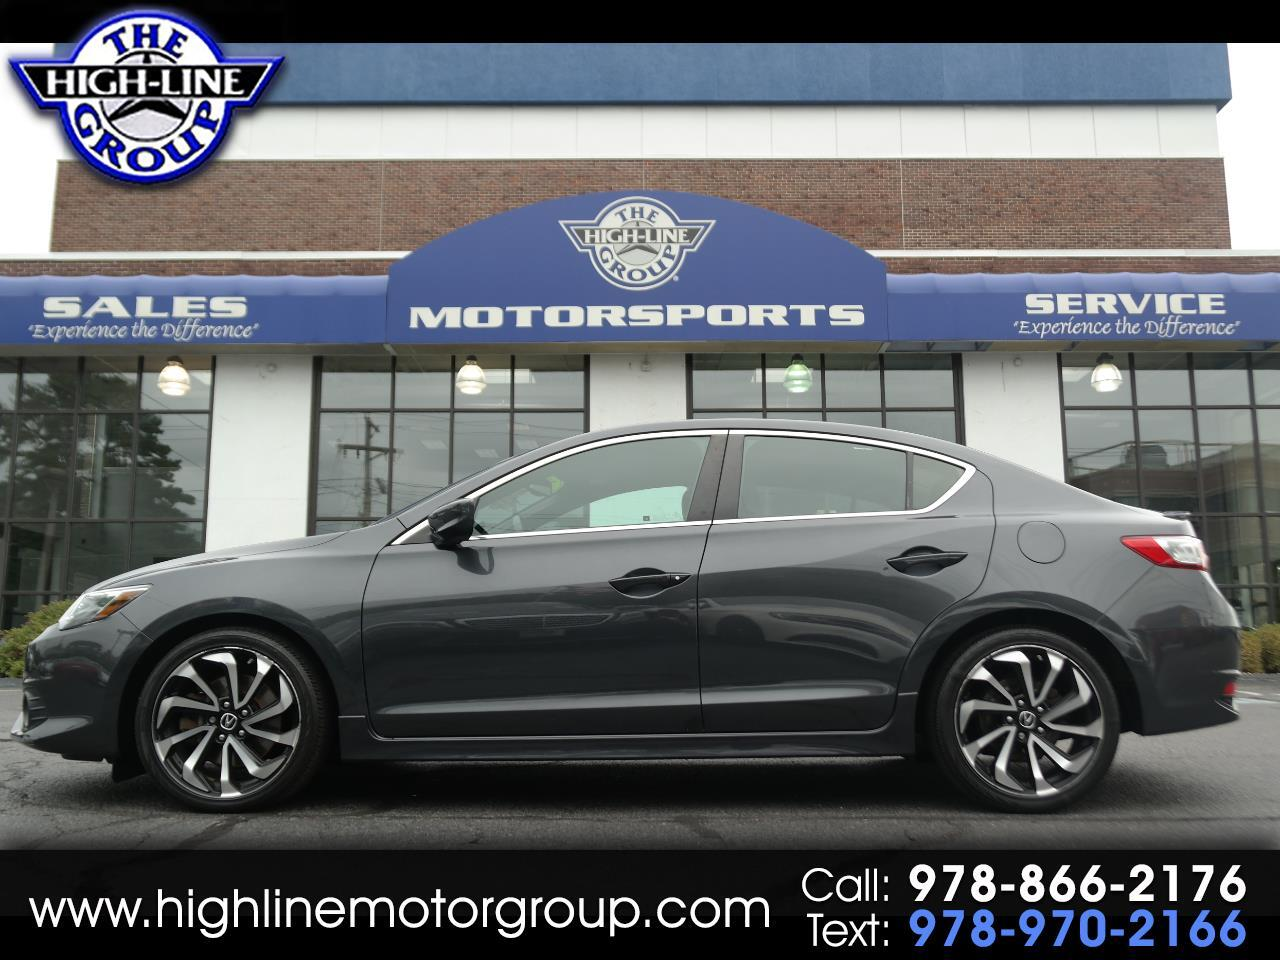 2016 Acura ILX 4dr Sdn w/Technology Plus/A-SPEC Pkg